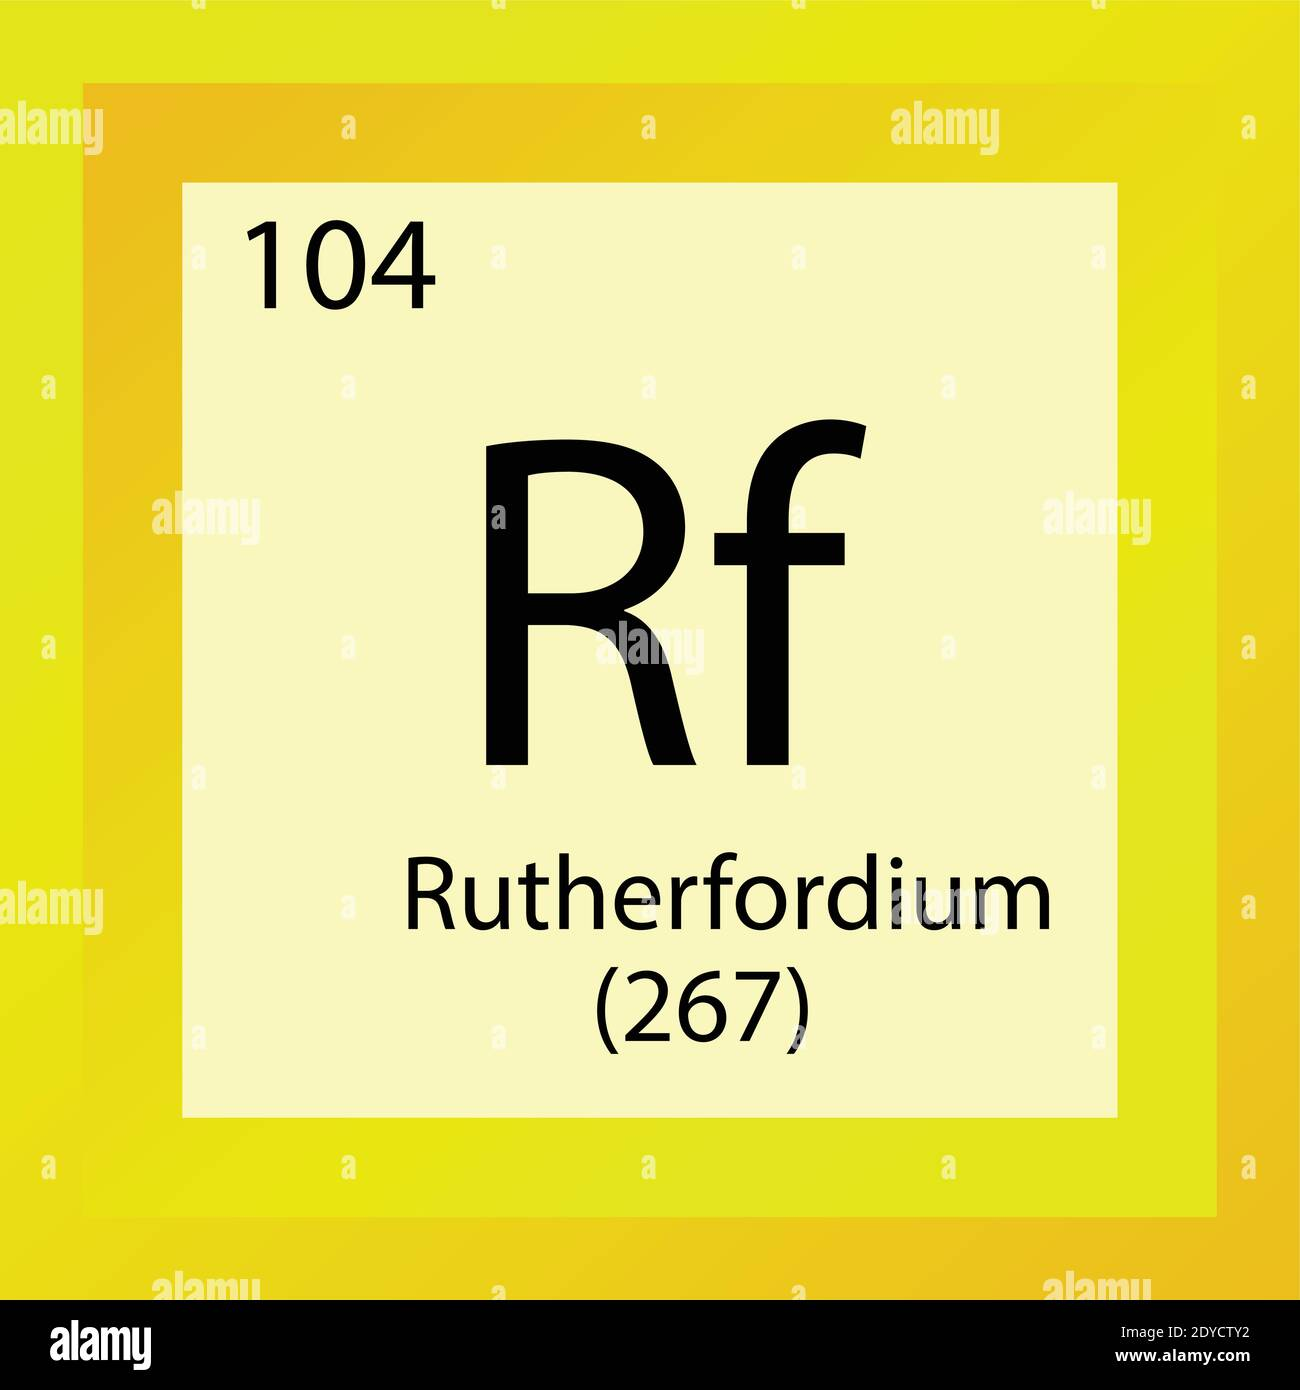 Rutherfordium Chemical Element Periodic Table. Single element vector illustration, transition metals element icon with molar mass and atomic number. Stock Vector